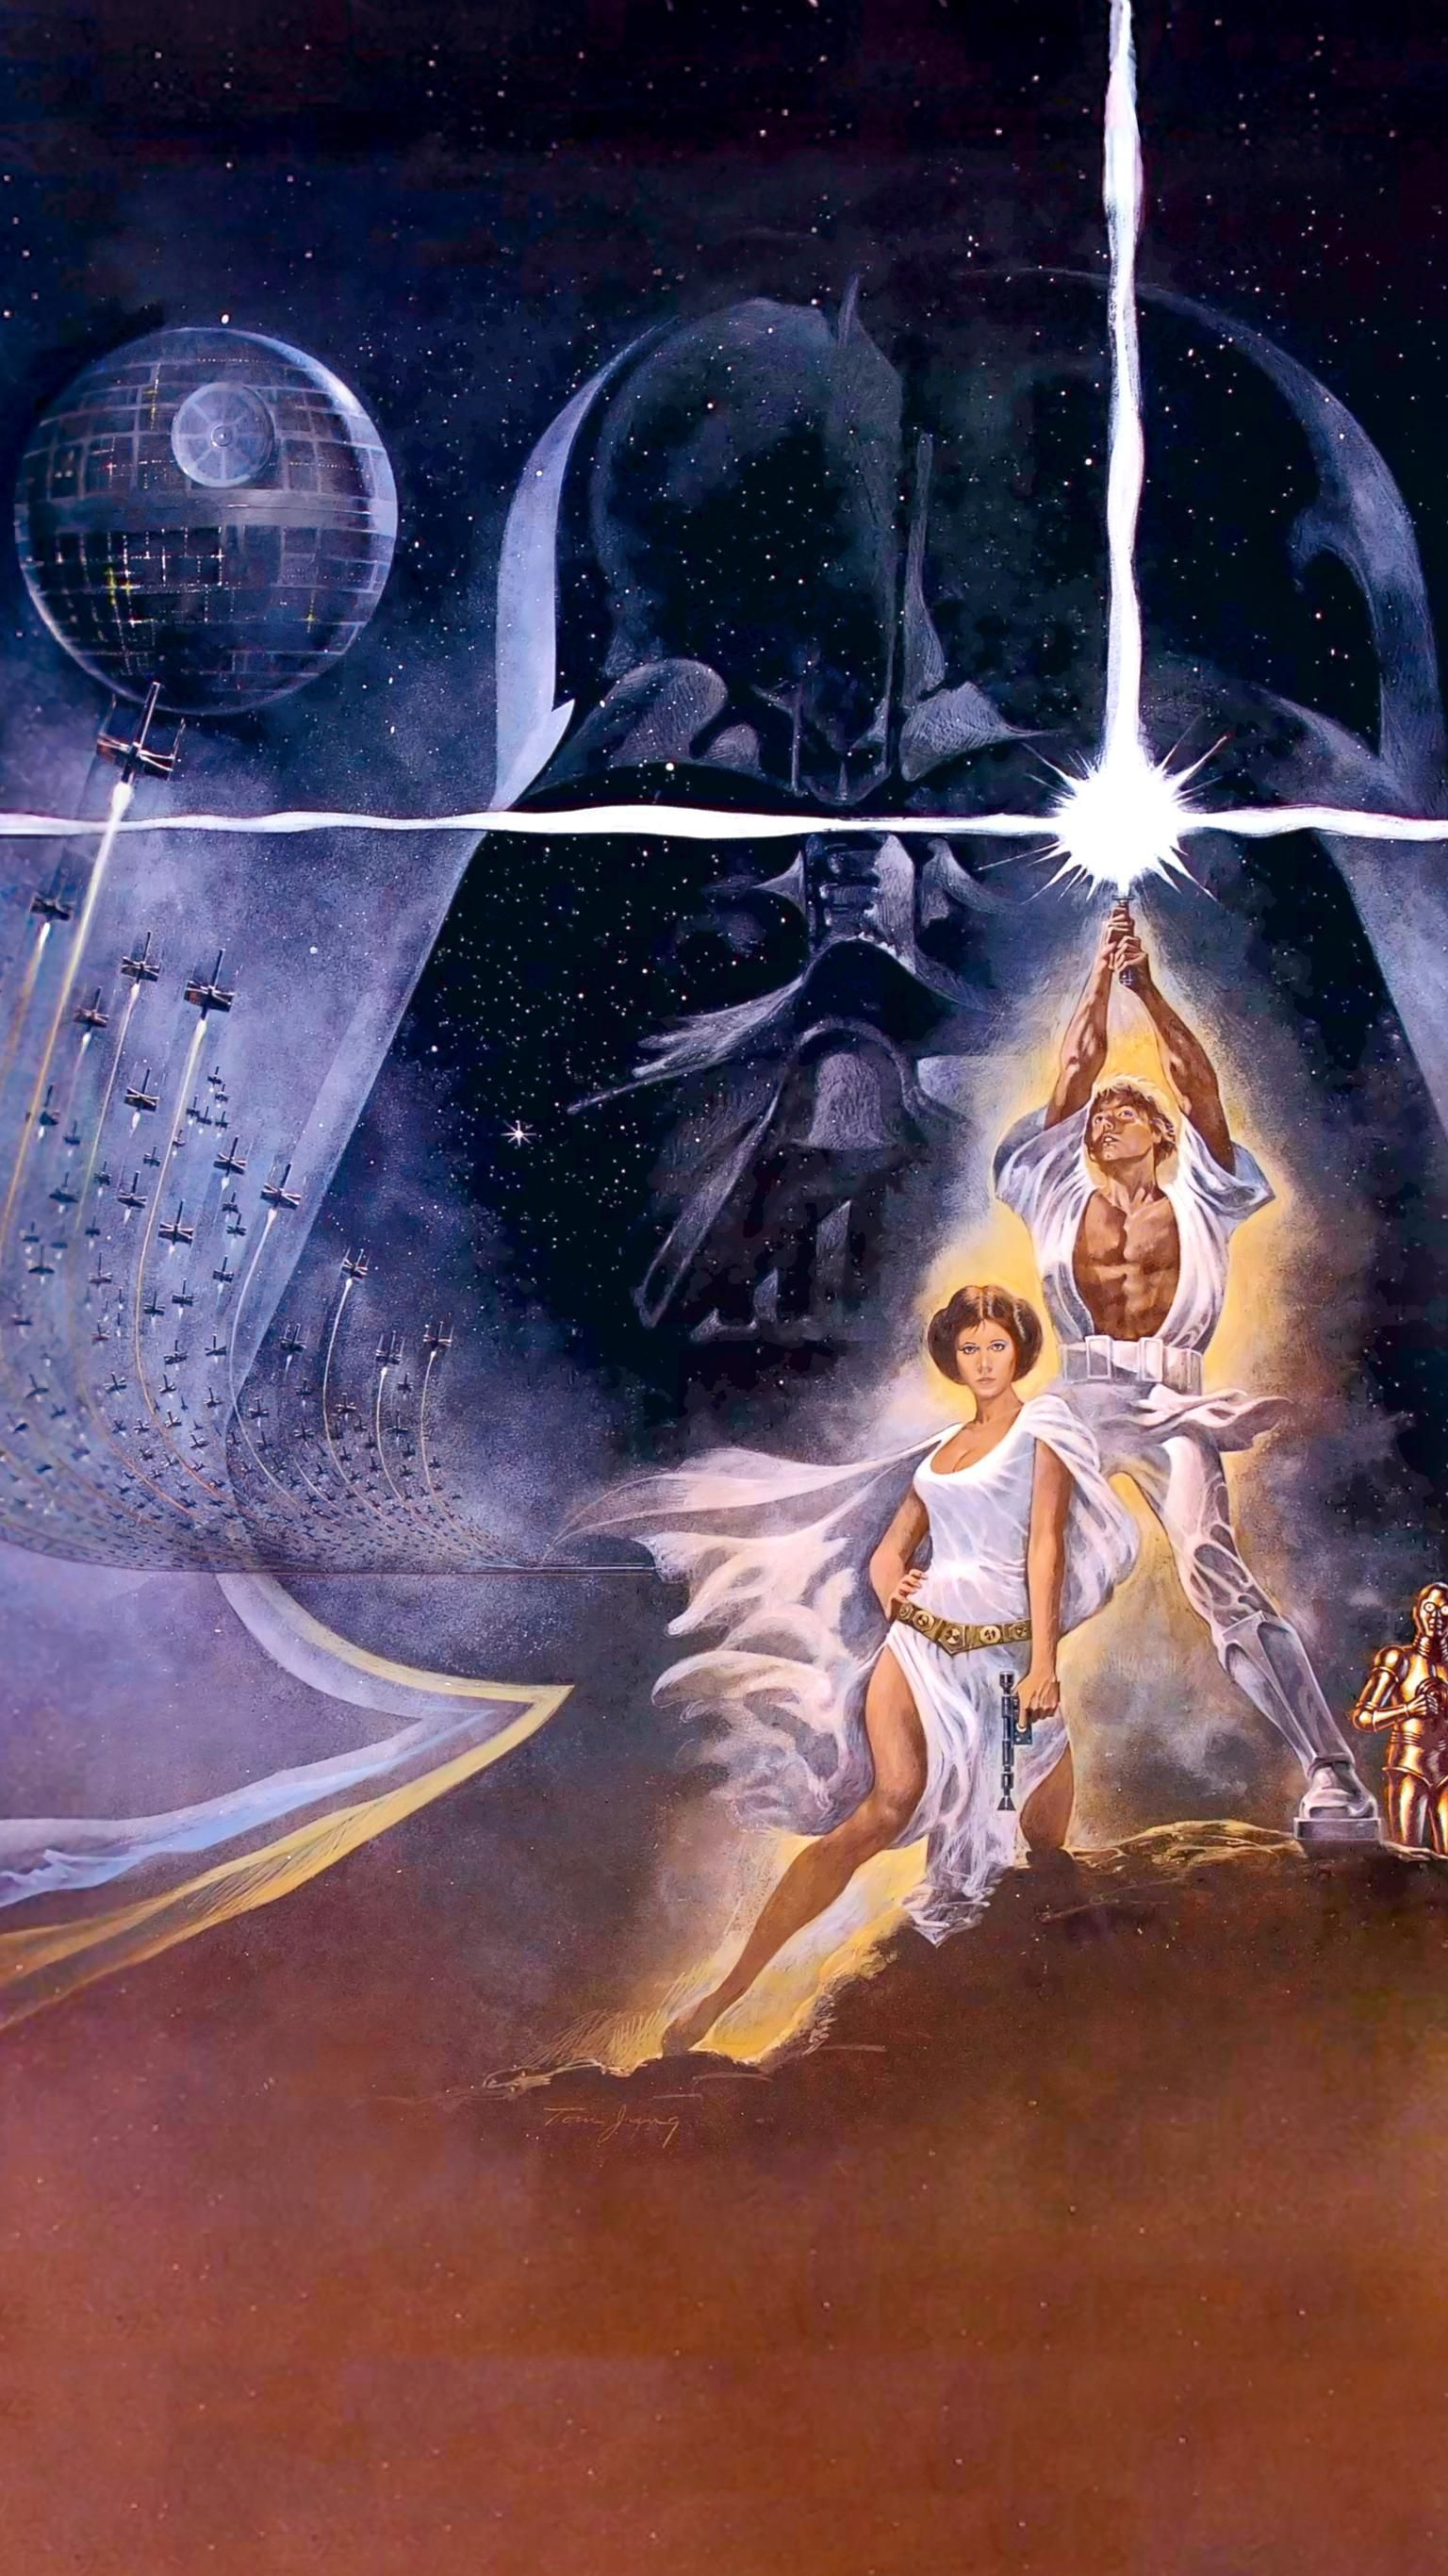 Star Wars 1977 Phone Wallpaper Moviemania Star Wars Poster Star Wars Art Star Wars Episode Iv